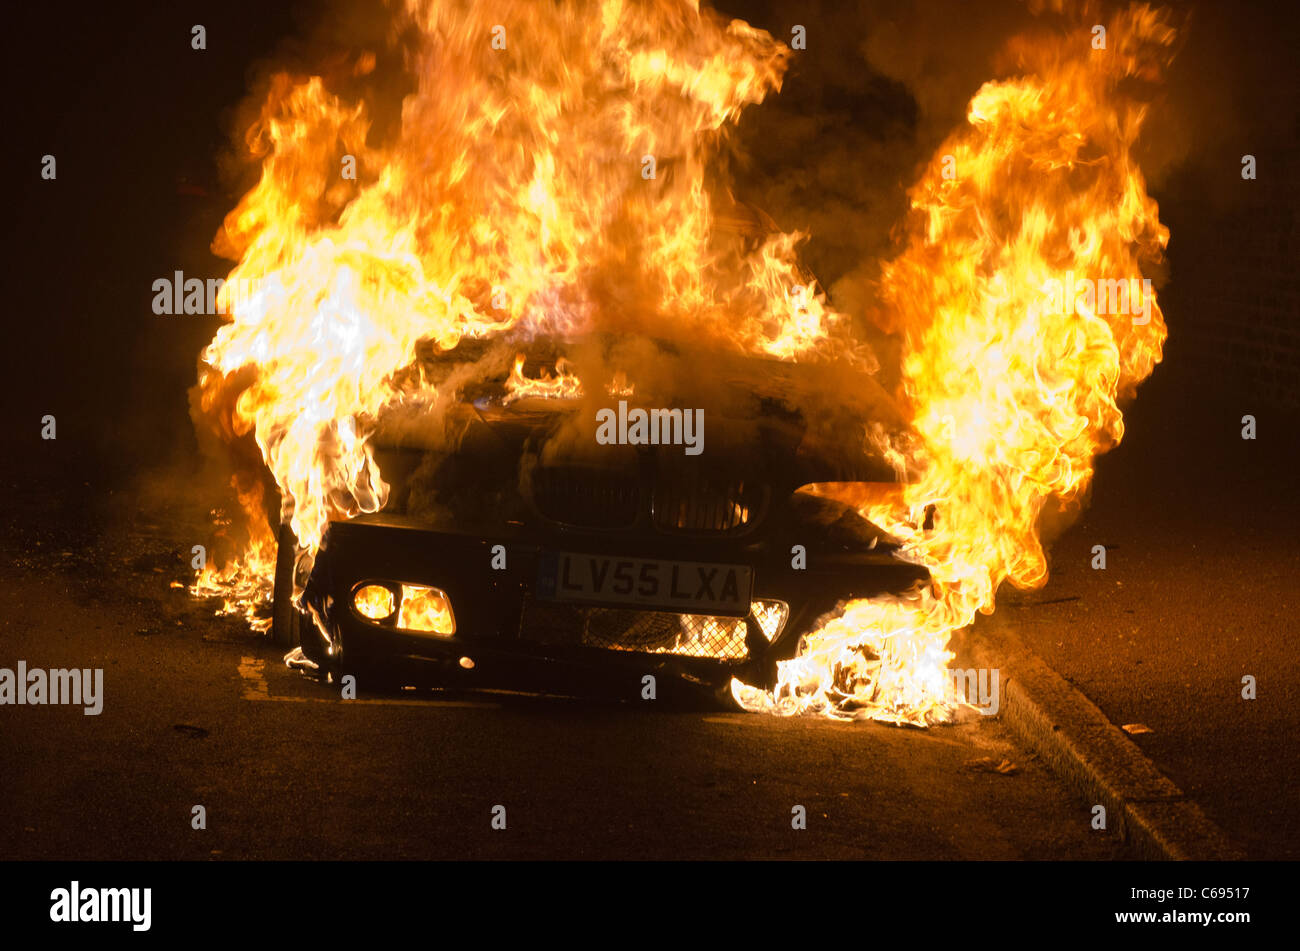 Burning BMW car Farquarson Road Croydon 9th August  2011 riots. - Stock Image